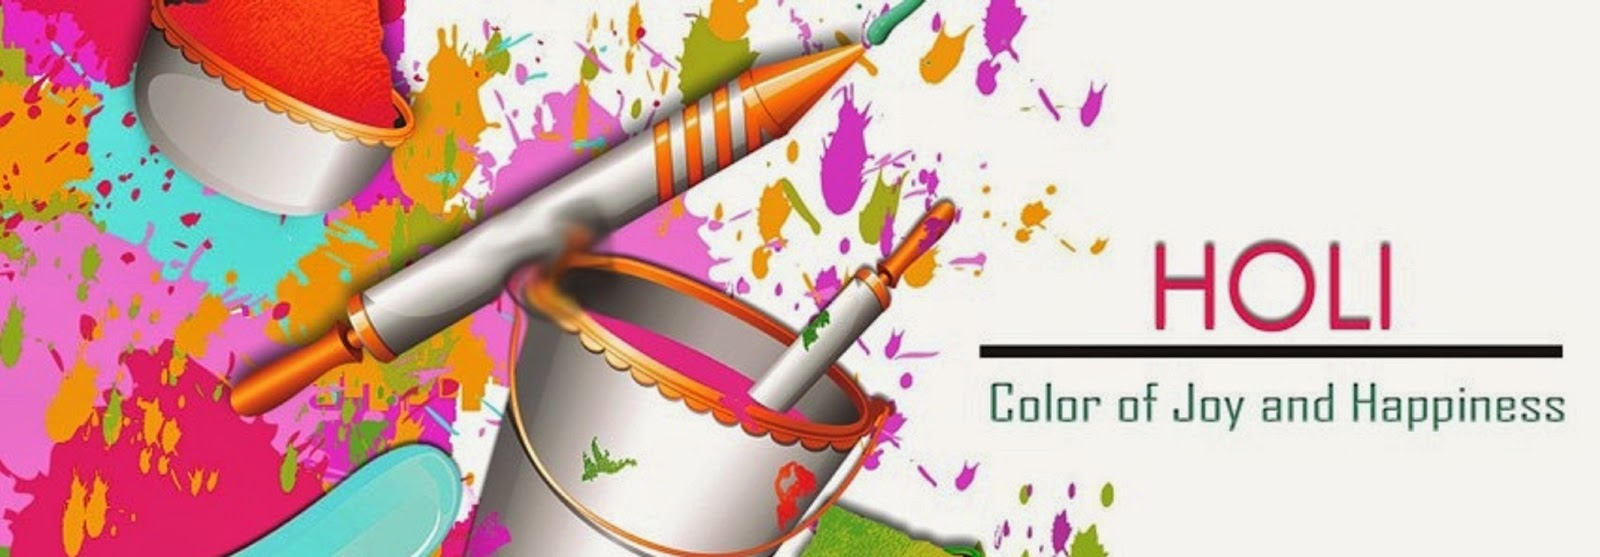 Happy holi 2016 facebook cover wallpaper image